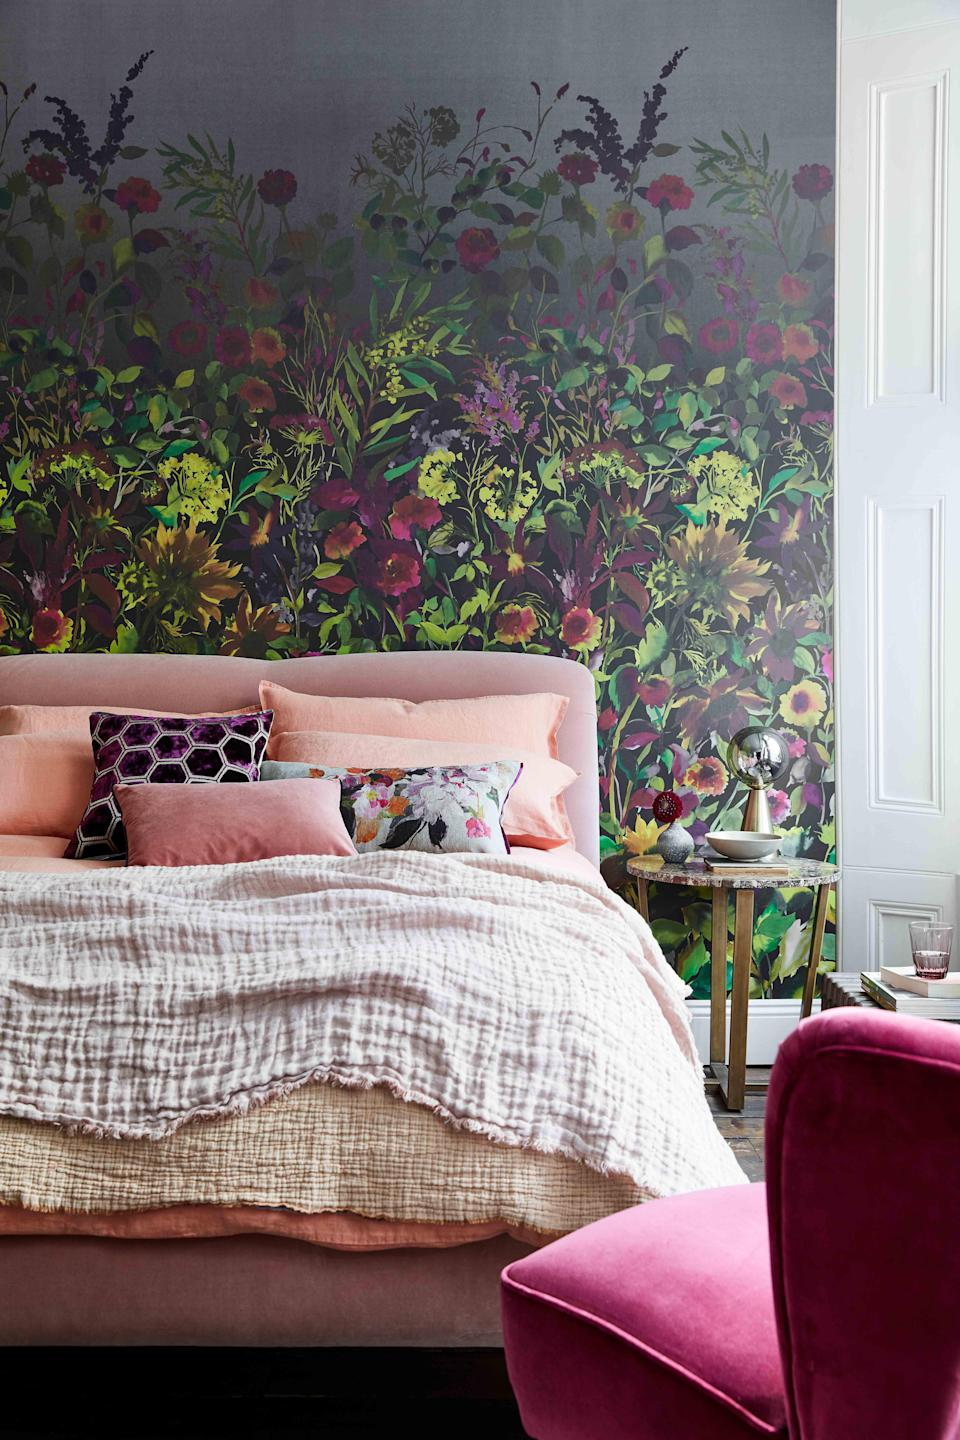 "<p><strong>Do you know the secret to an Instagrammable <a href=""https://www.housebeautiful.com/uk/decorate/bedroom/g31/bedroom-decorating-ideas/"" rel=""nofollow noopener"" target=""_blank"" data-ylk=""slk:bedroom"" class=""link rapid-noclick-resp"">bedroom</a>? From velvet furniture to standout lighting, we ask the experts to weigh in on the clever ways to smarten up your bedroom space. </strong></p><p>There are many ways you can transform your bedroom into a tranquil, stylish place to help you unwind at the end of the working day. From accessories to the right paint colour, get inspiration for your bedroom below.</p>"